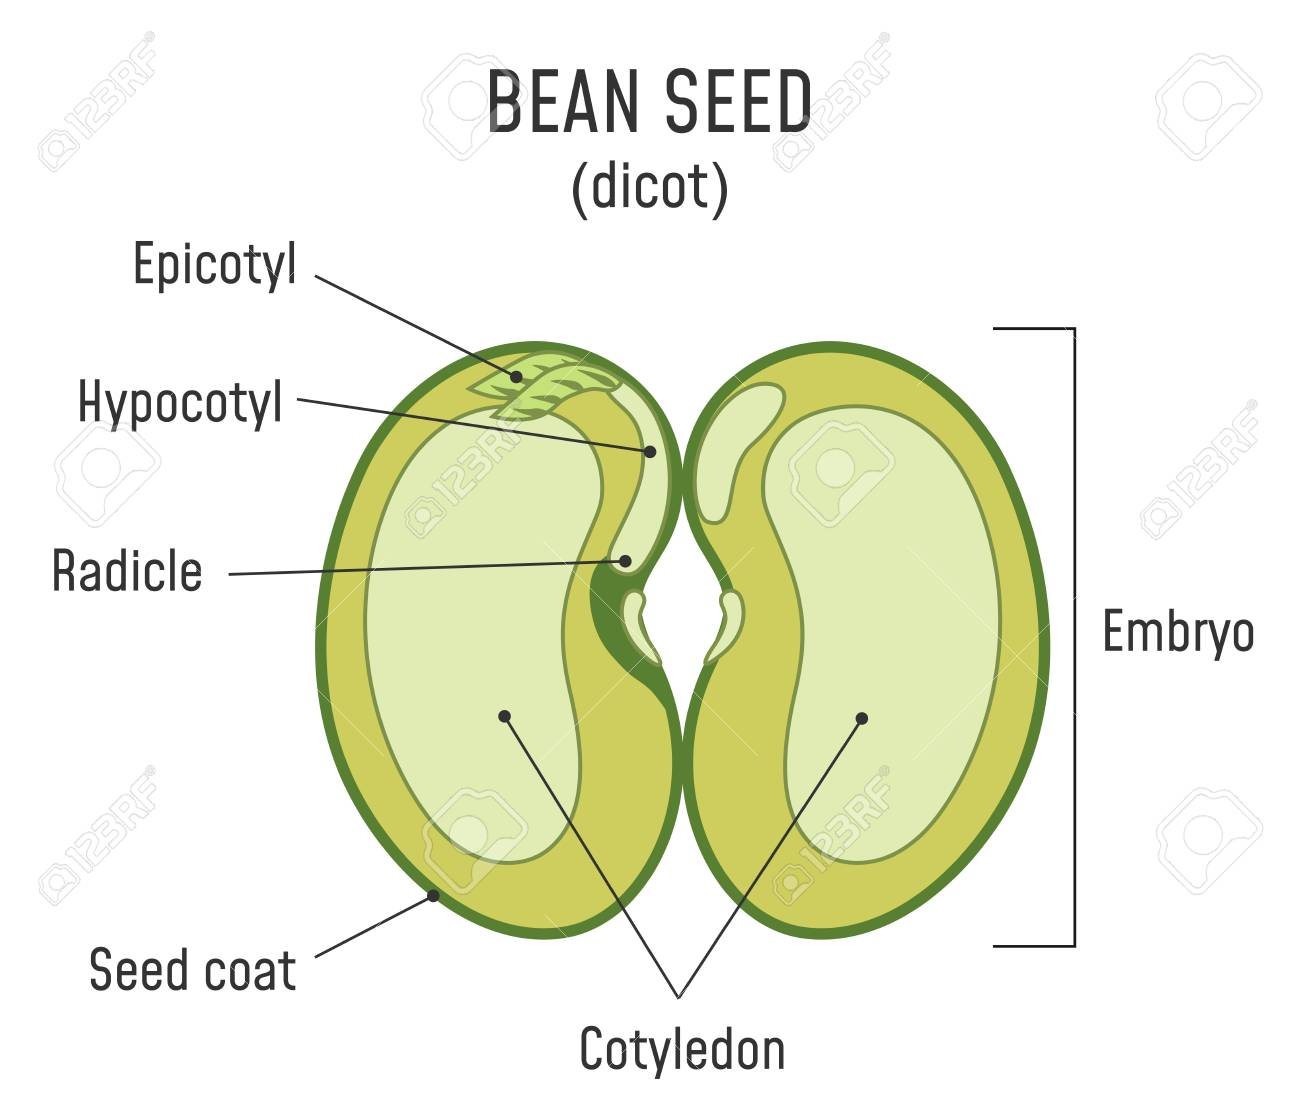 bean seed structure. anatomy of grain. dicot seed diagram. royalty free  cliparts, vectors, and stock illustration. image 124796334.  123rf.com